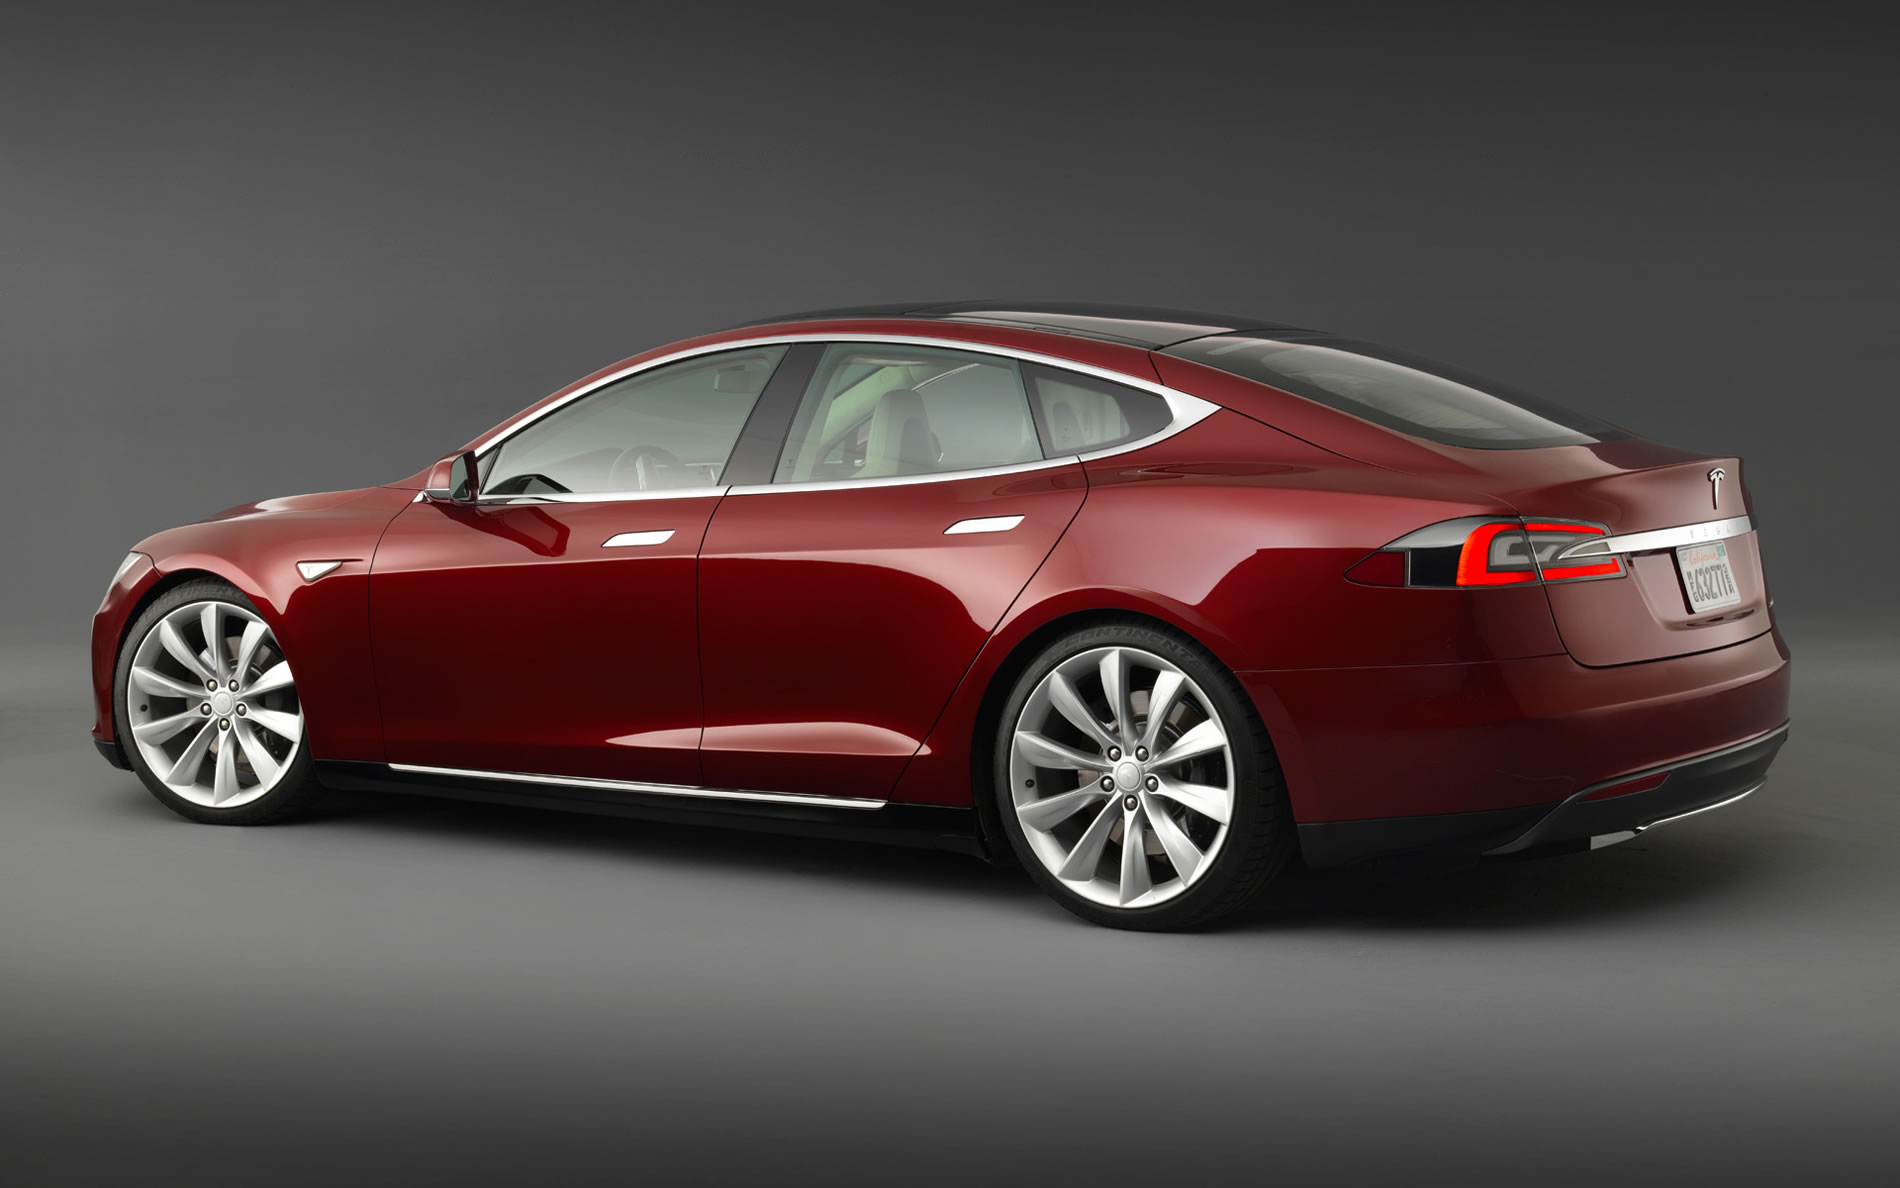 2014 tesla model s p85 photos specs and review rs. Black Bedroom Furniture Sets. Home Design Ideas